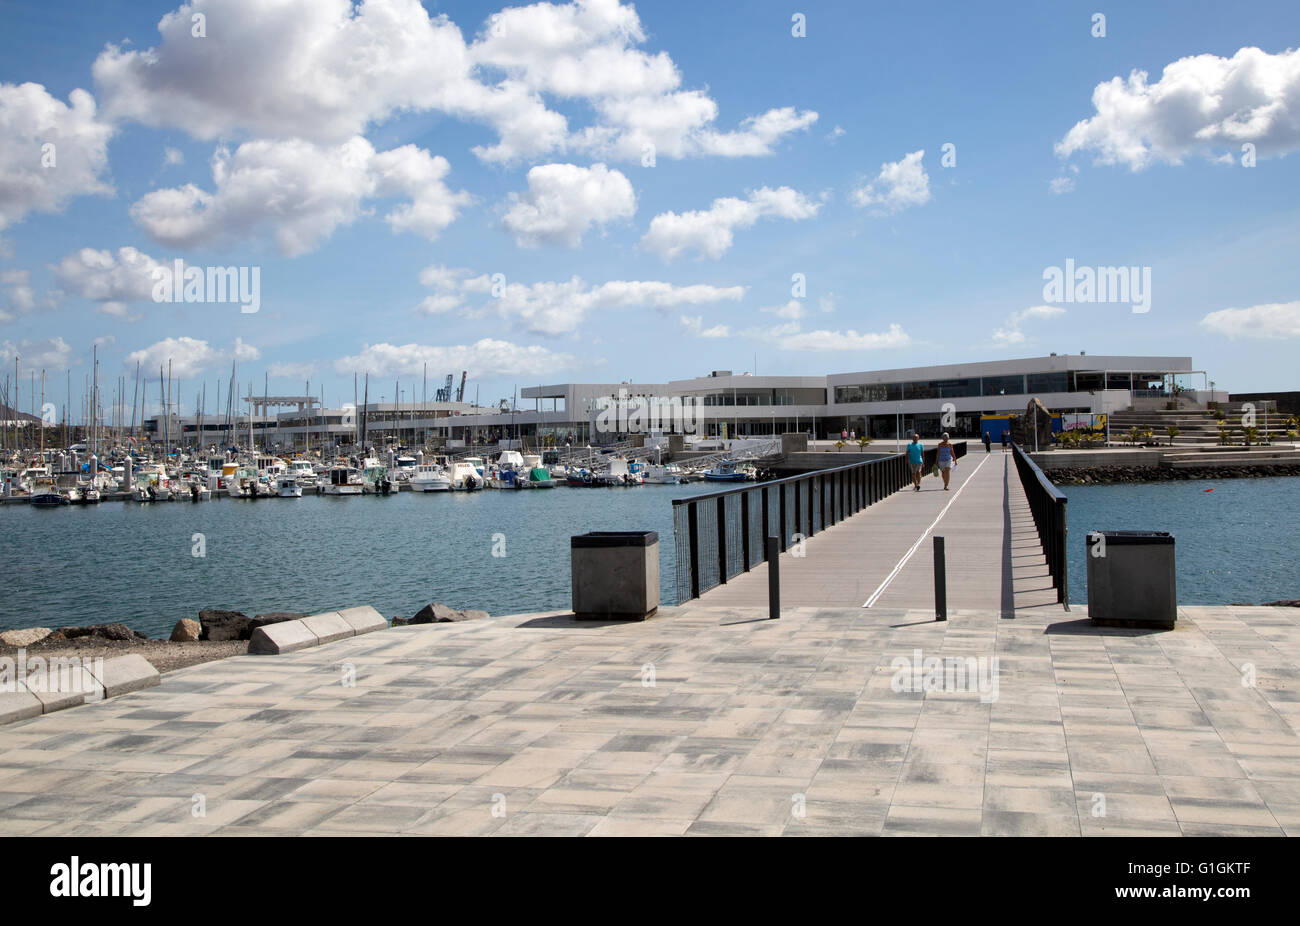 Yachts at moorings and new buildings marina area of Arrecife, Lanzarote, Canary Islands, Spain - Stock Image